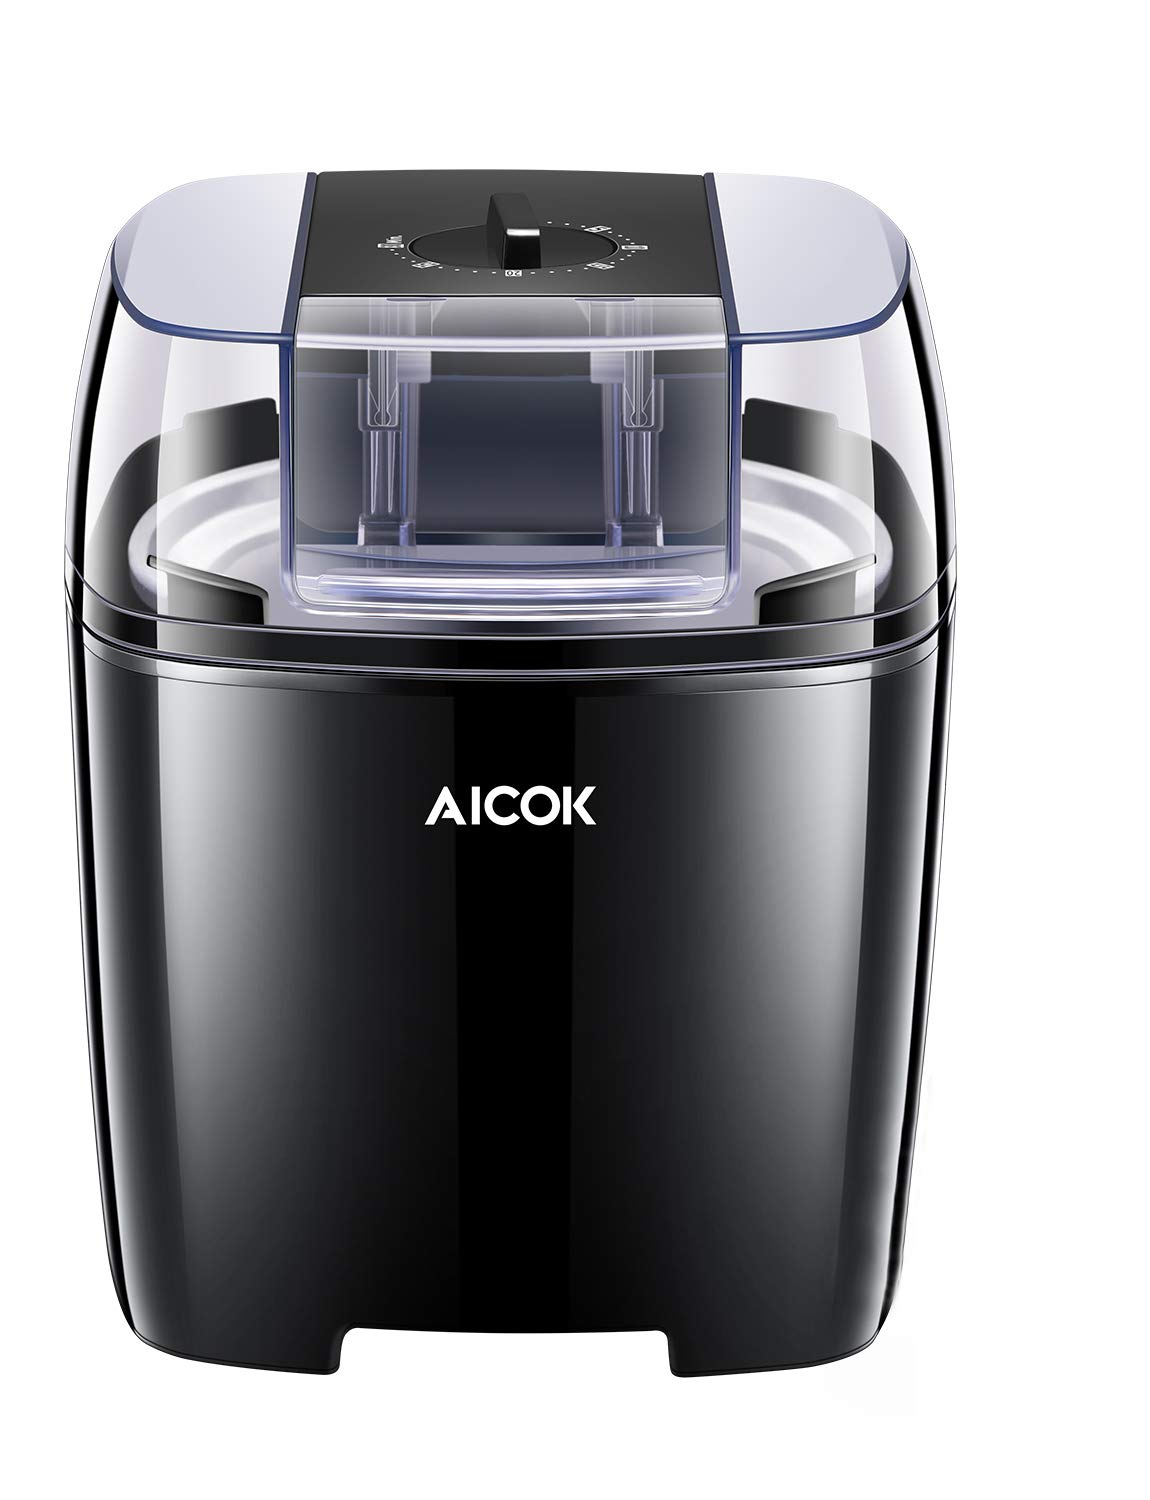 Aicok Ice Cream Maker, Frozen Yogurt and Sorbet Machine BPA Free with Timer Function, Easy Homemade Ice Cream with Instruction Book, 1.4 Quart, Black